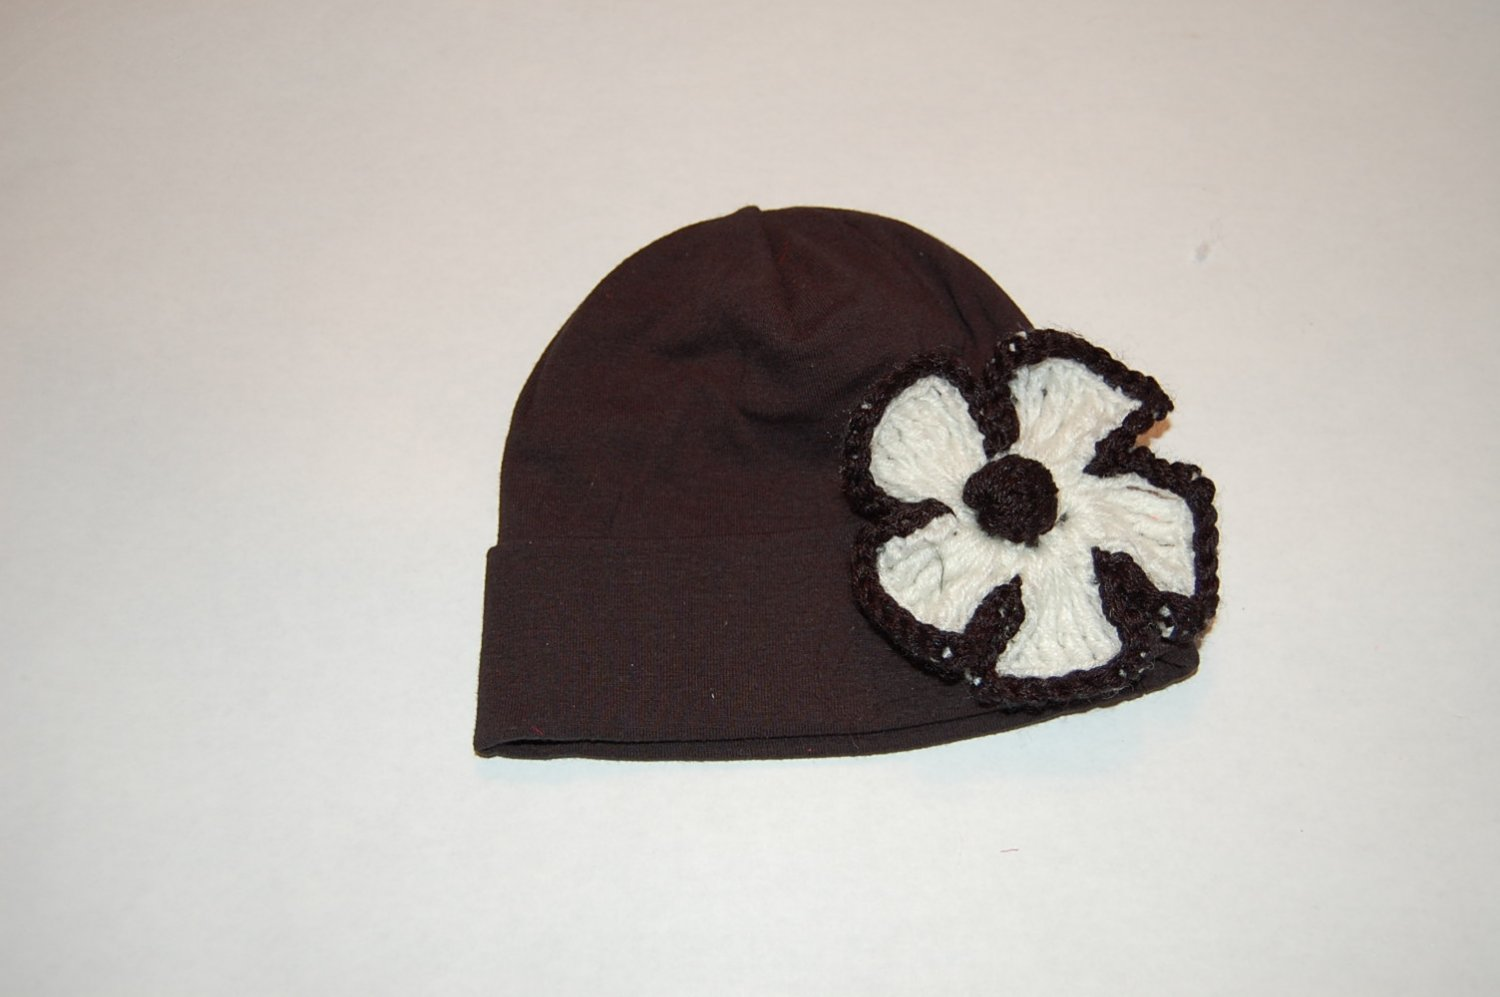 Cotton Black Hat with Crocheted Black/White Flower